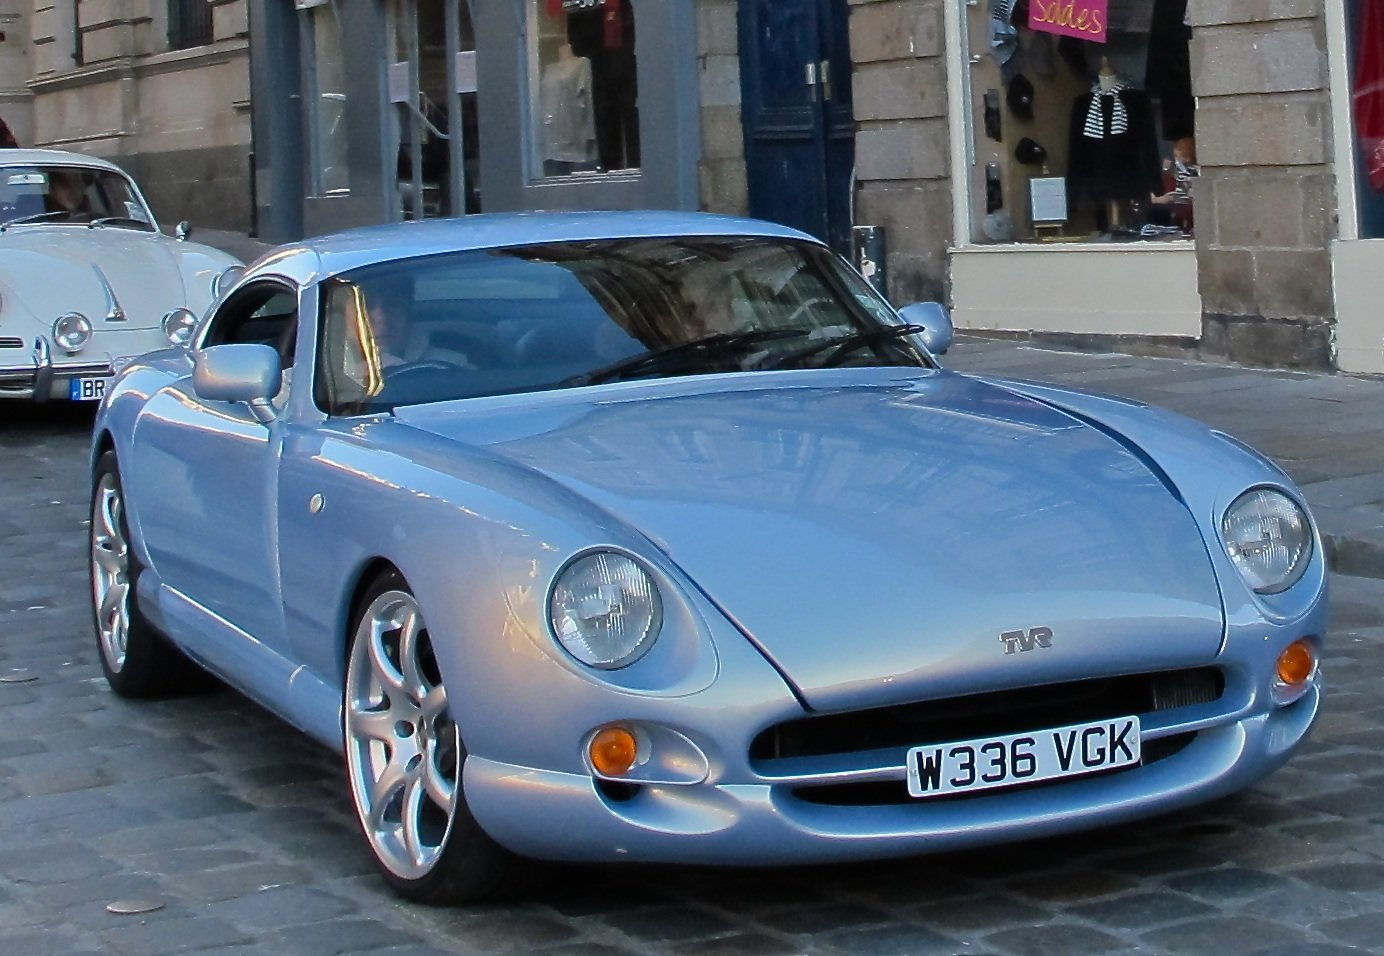 2000 Stunning cerbera v8 4.2 For Sale (picture 1 of 6)